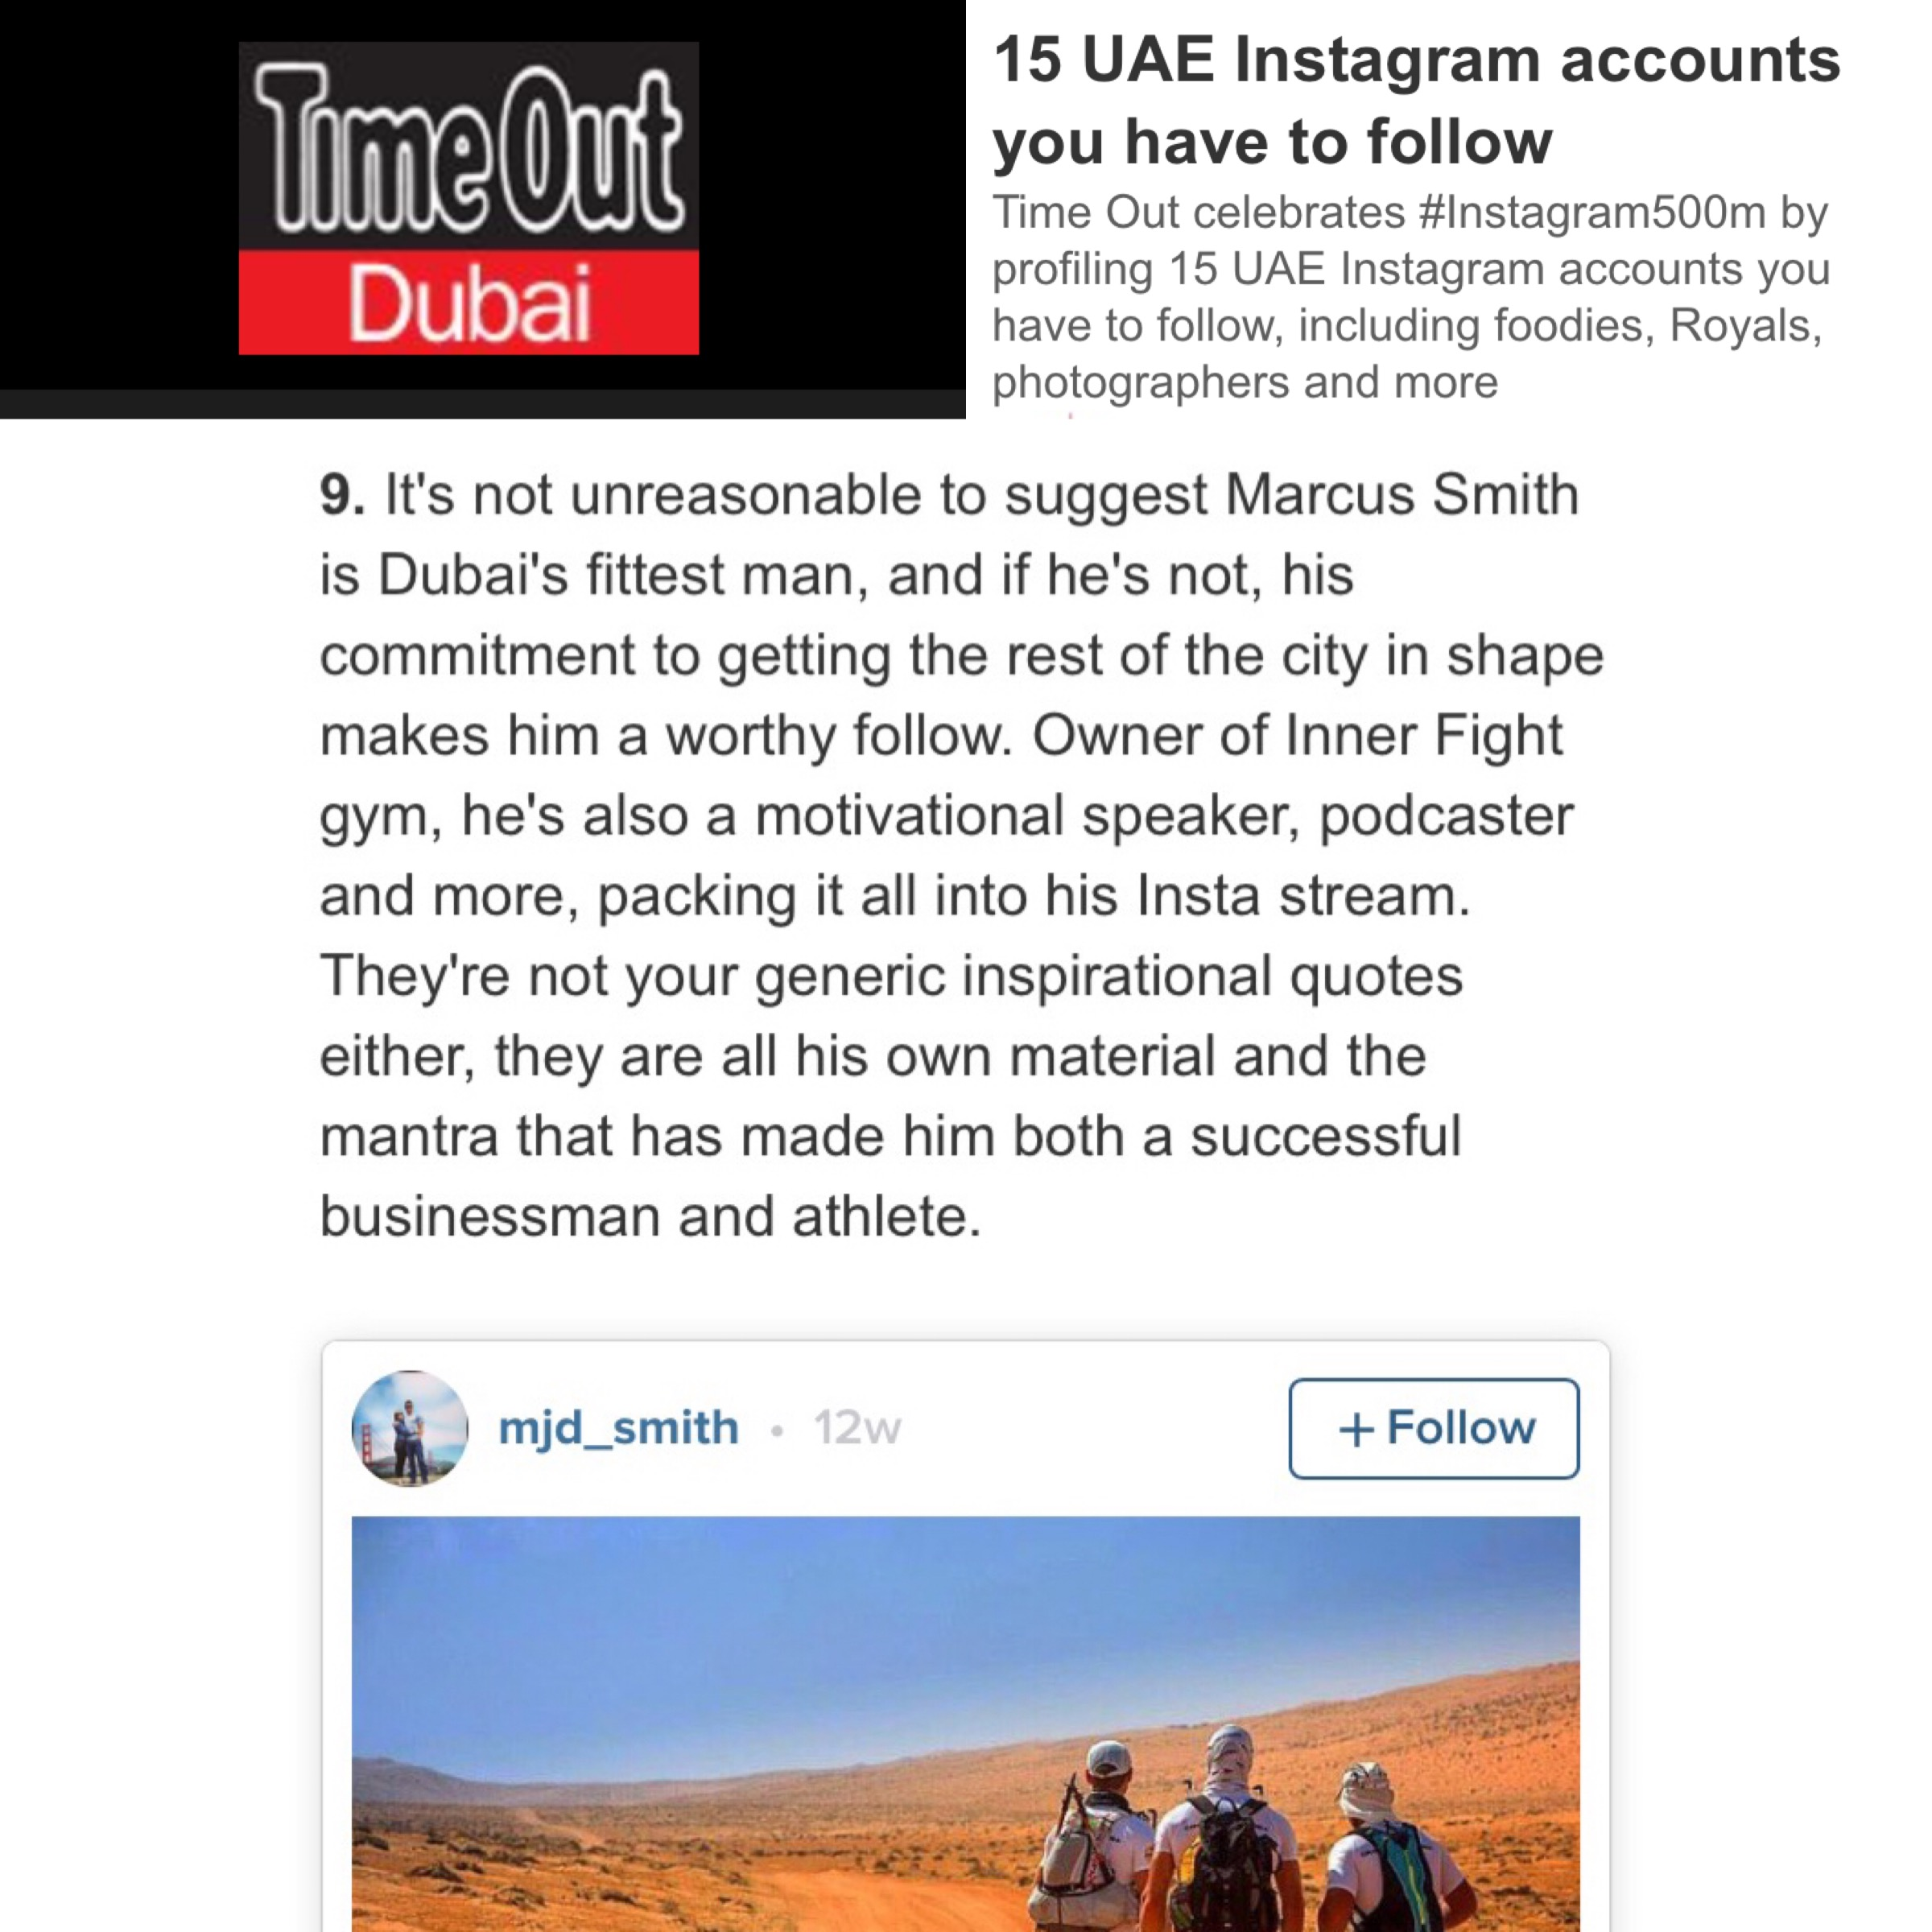 15 UAE Instagram accounts you have to follow